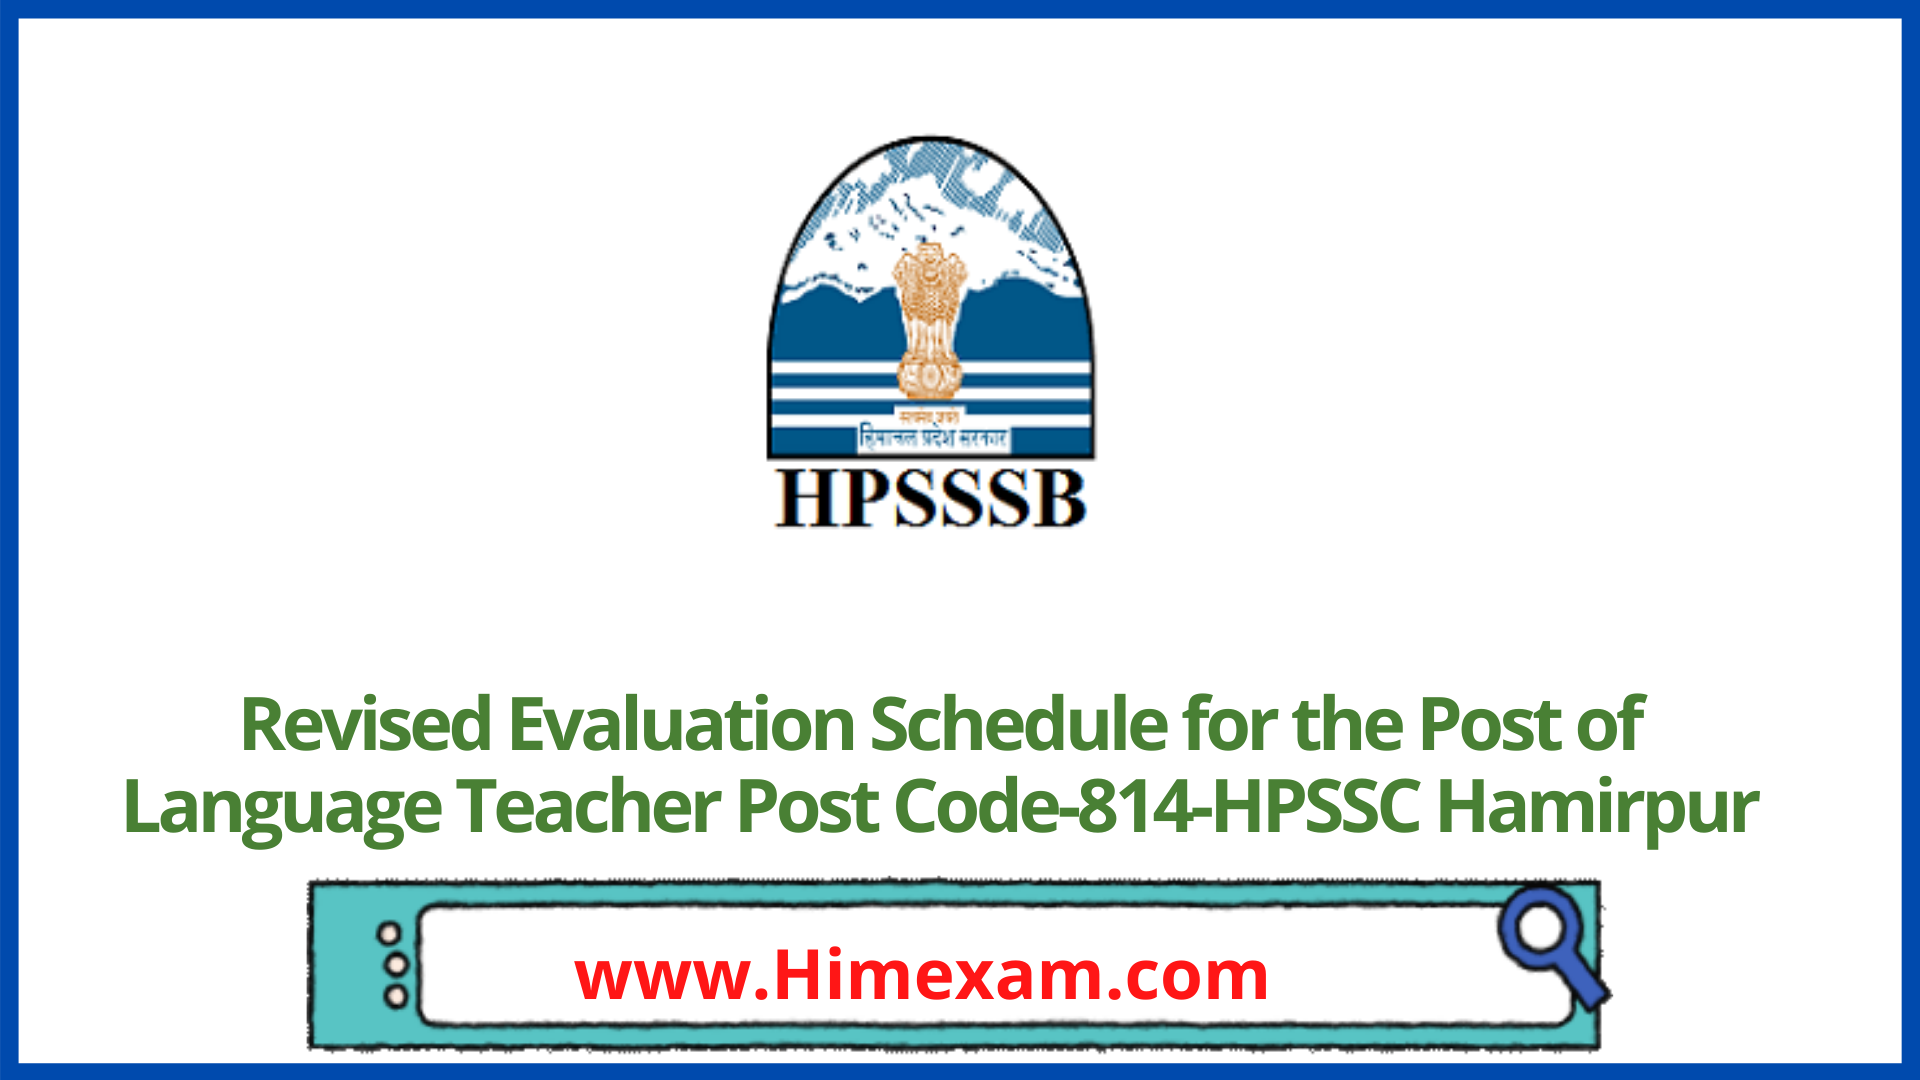 Revised Evaluation Schedule for the Post of Language Teacher Post Code-814-HPSSC Hamirpur